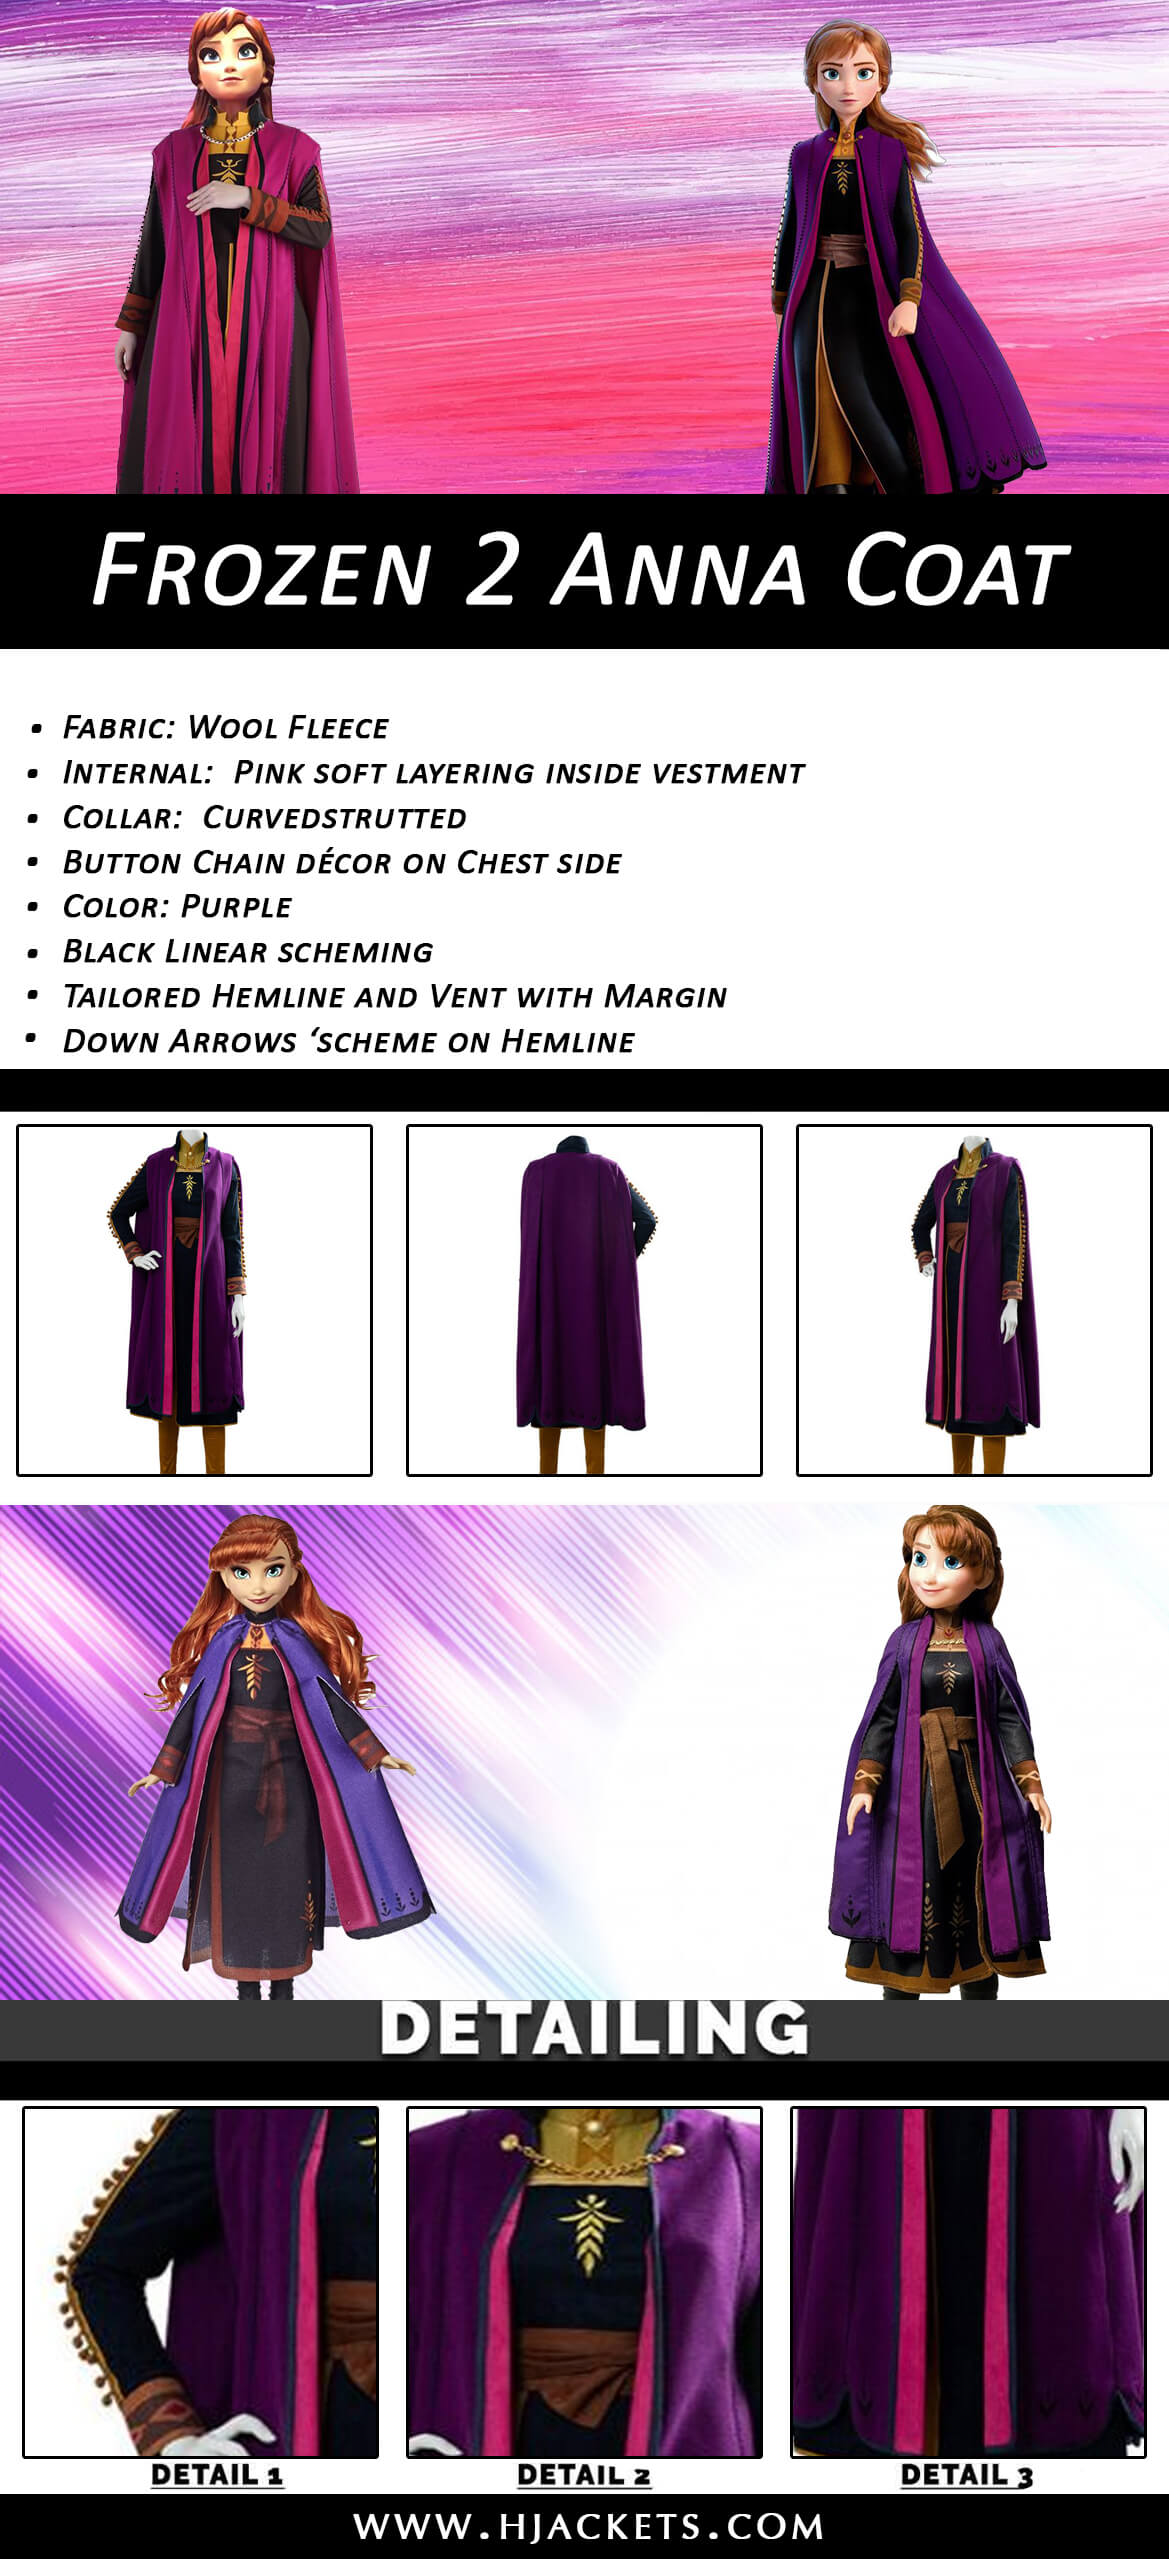 Frozen-2-Anna-Coat-infographic